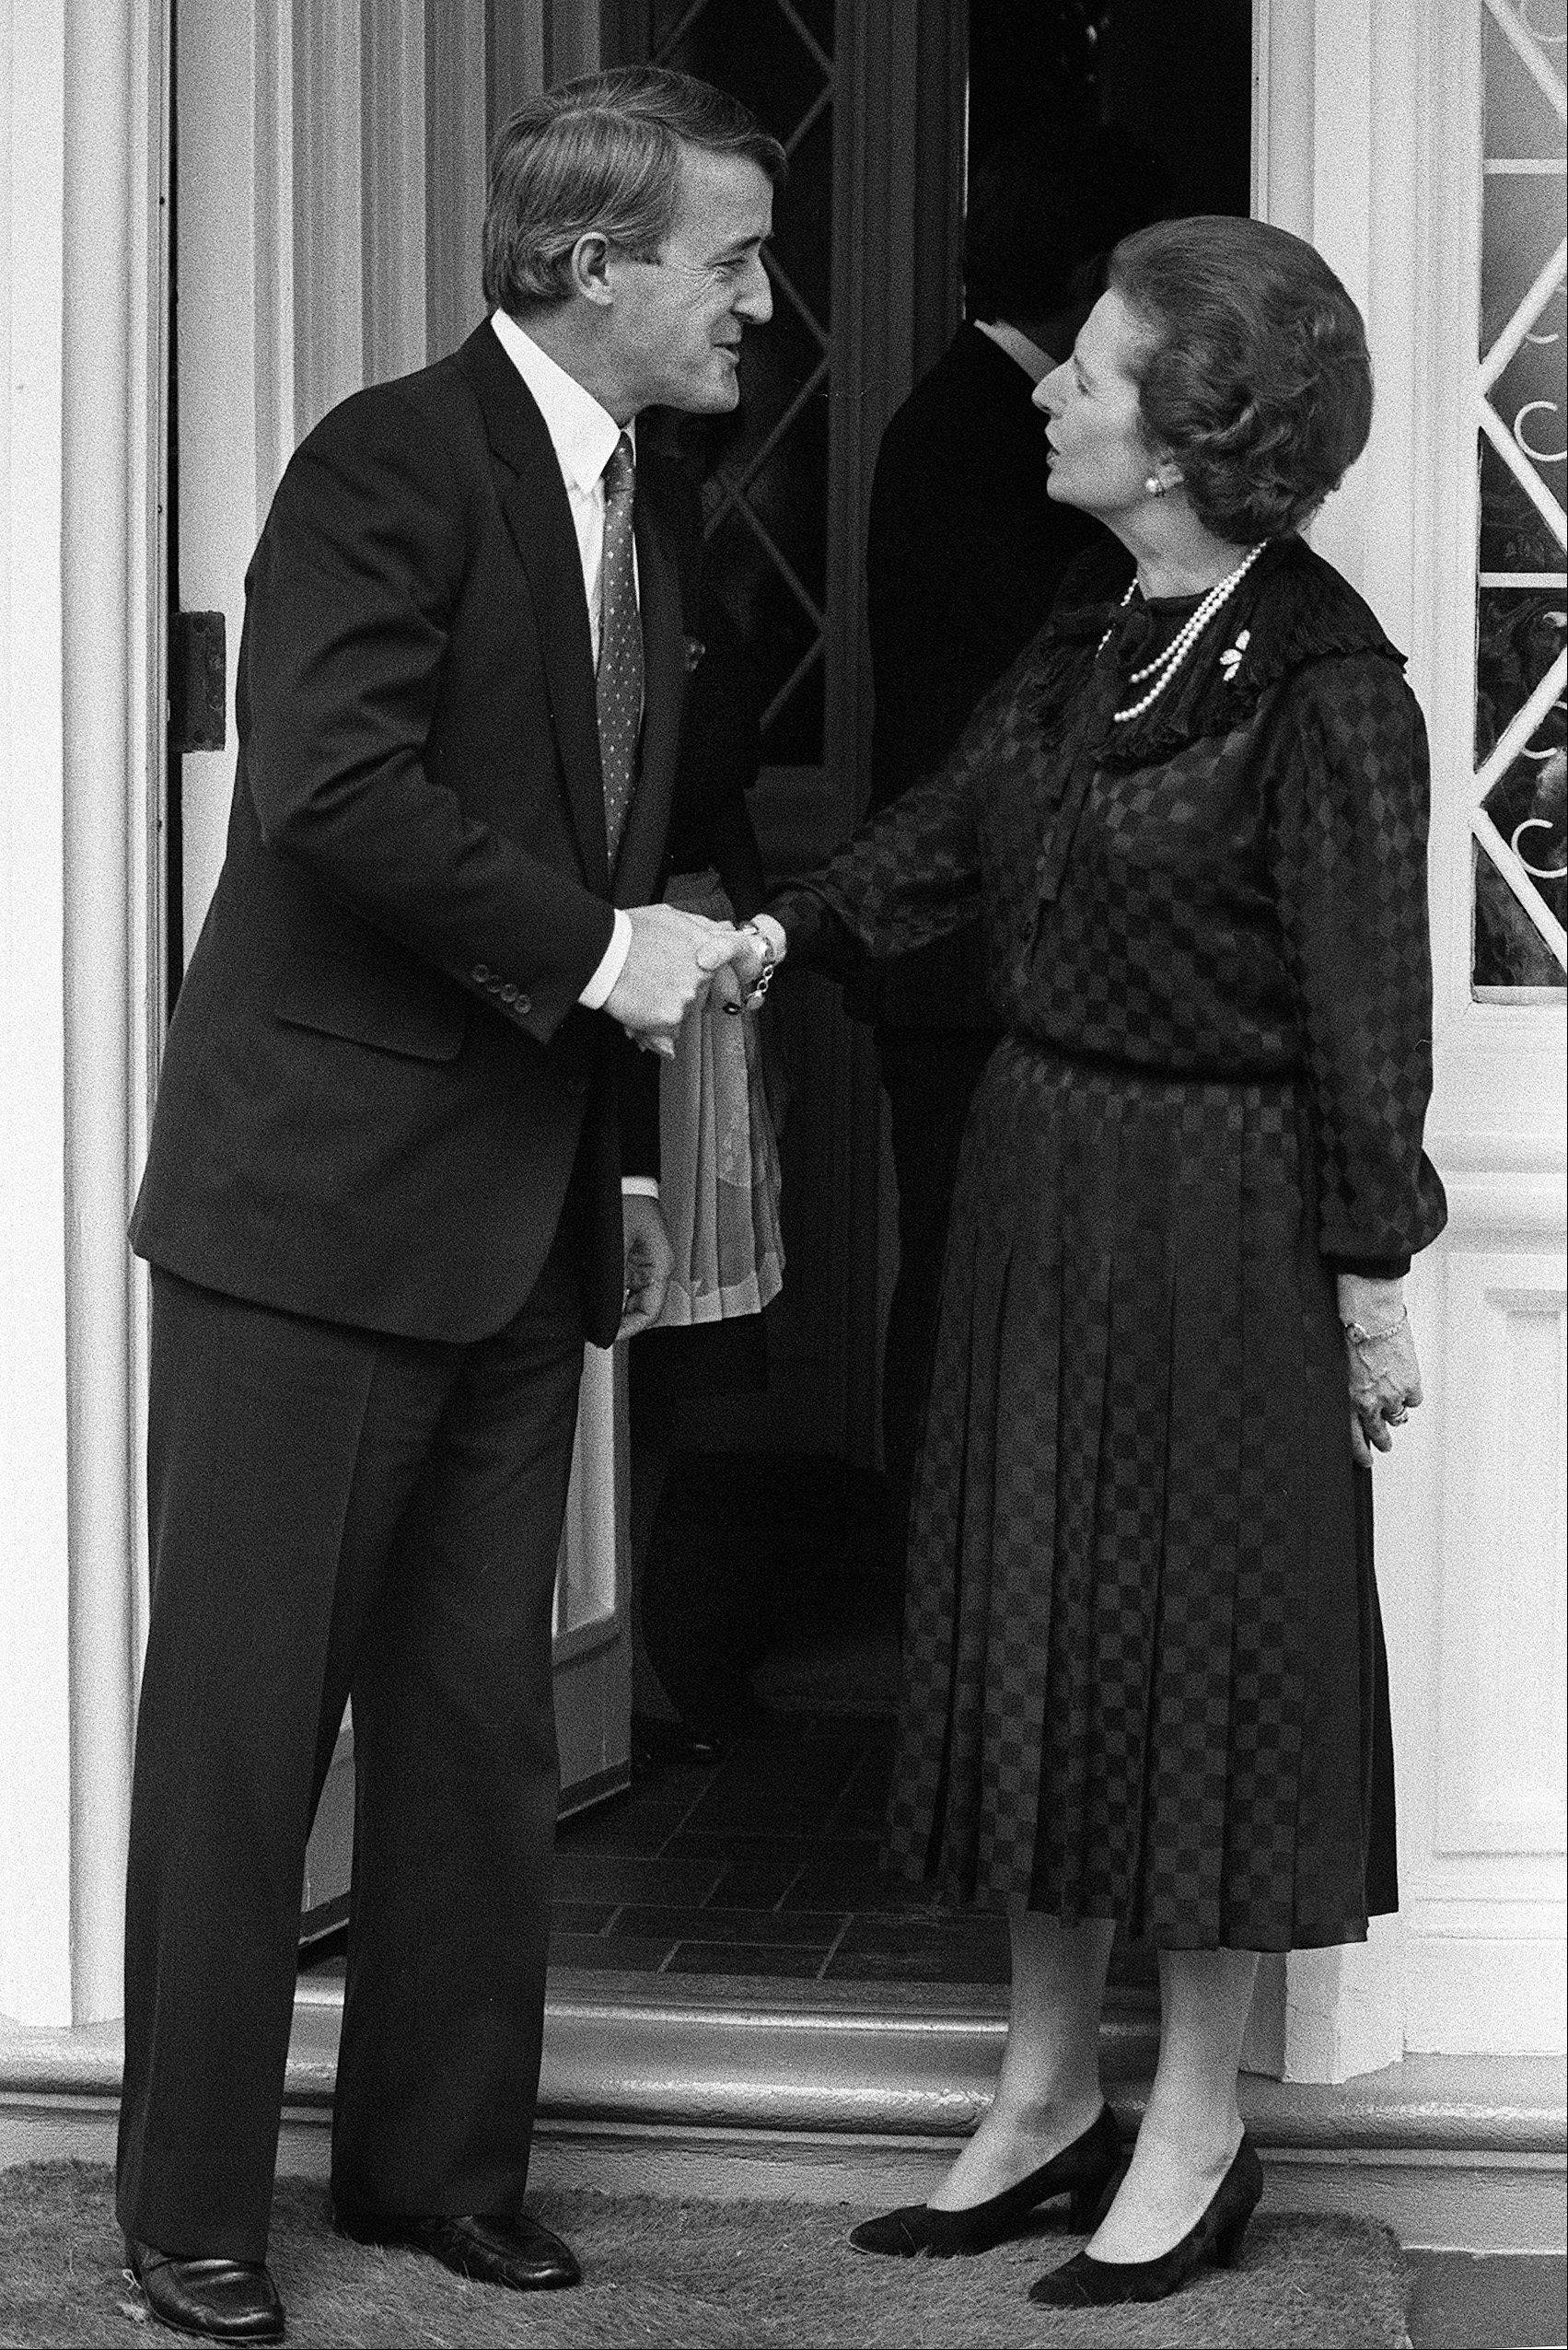 Then opposition leader Brian Mulroney shakes hands with British Prime Minister Margaret Thatcher at the British High Commissioners residence in Ottawa, Ont. Sept. 26, 1983. Thatcher�s former spokesman, Tim Bell, said that the former British Prime Minister Margaret Thatcher had died Monday morning, April 8, 2013, of a stroke. She was 87 years old.